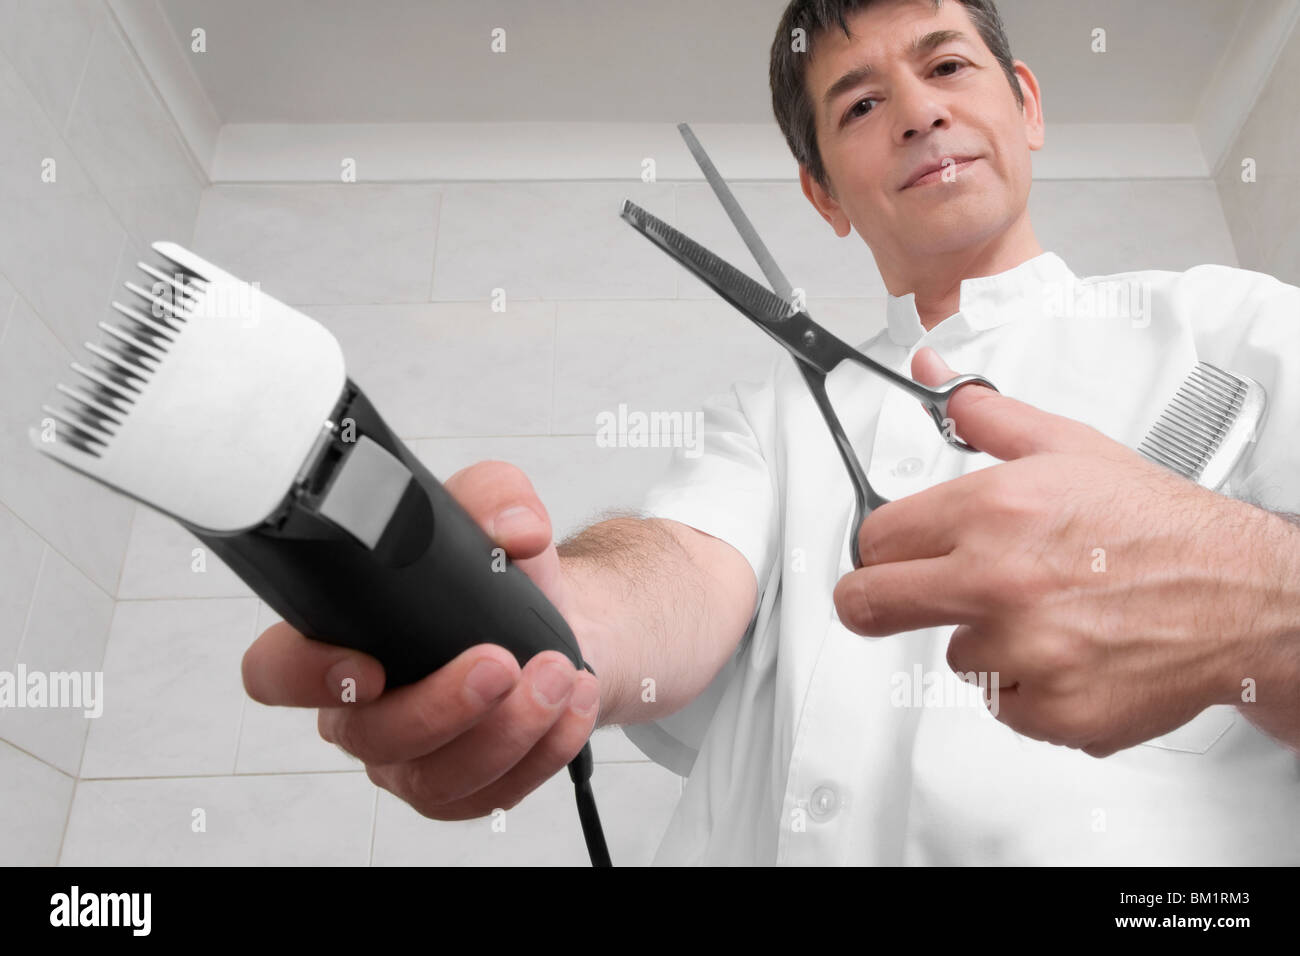 Vet holding an electric razor and scissors - Stock Image